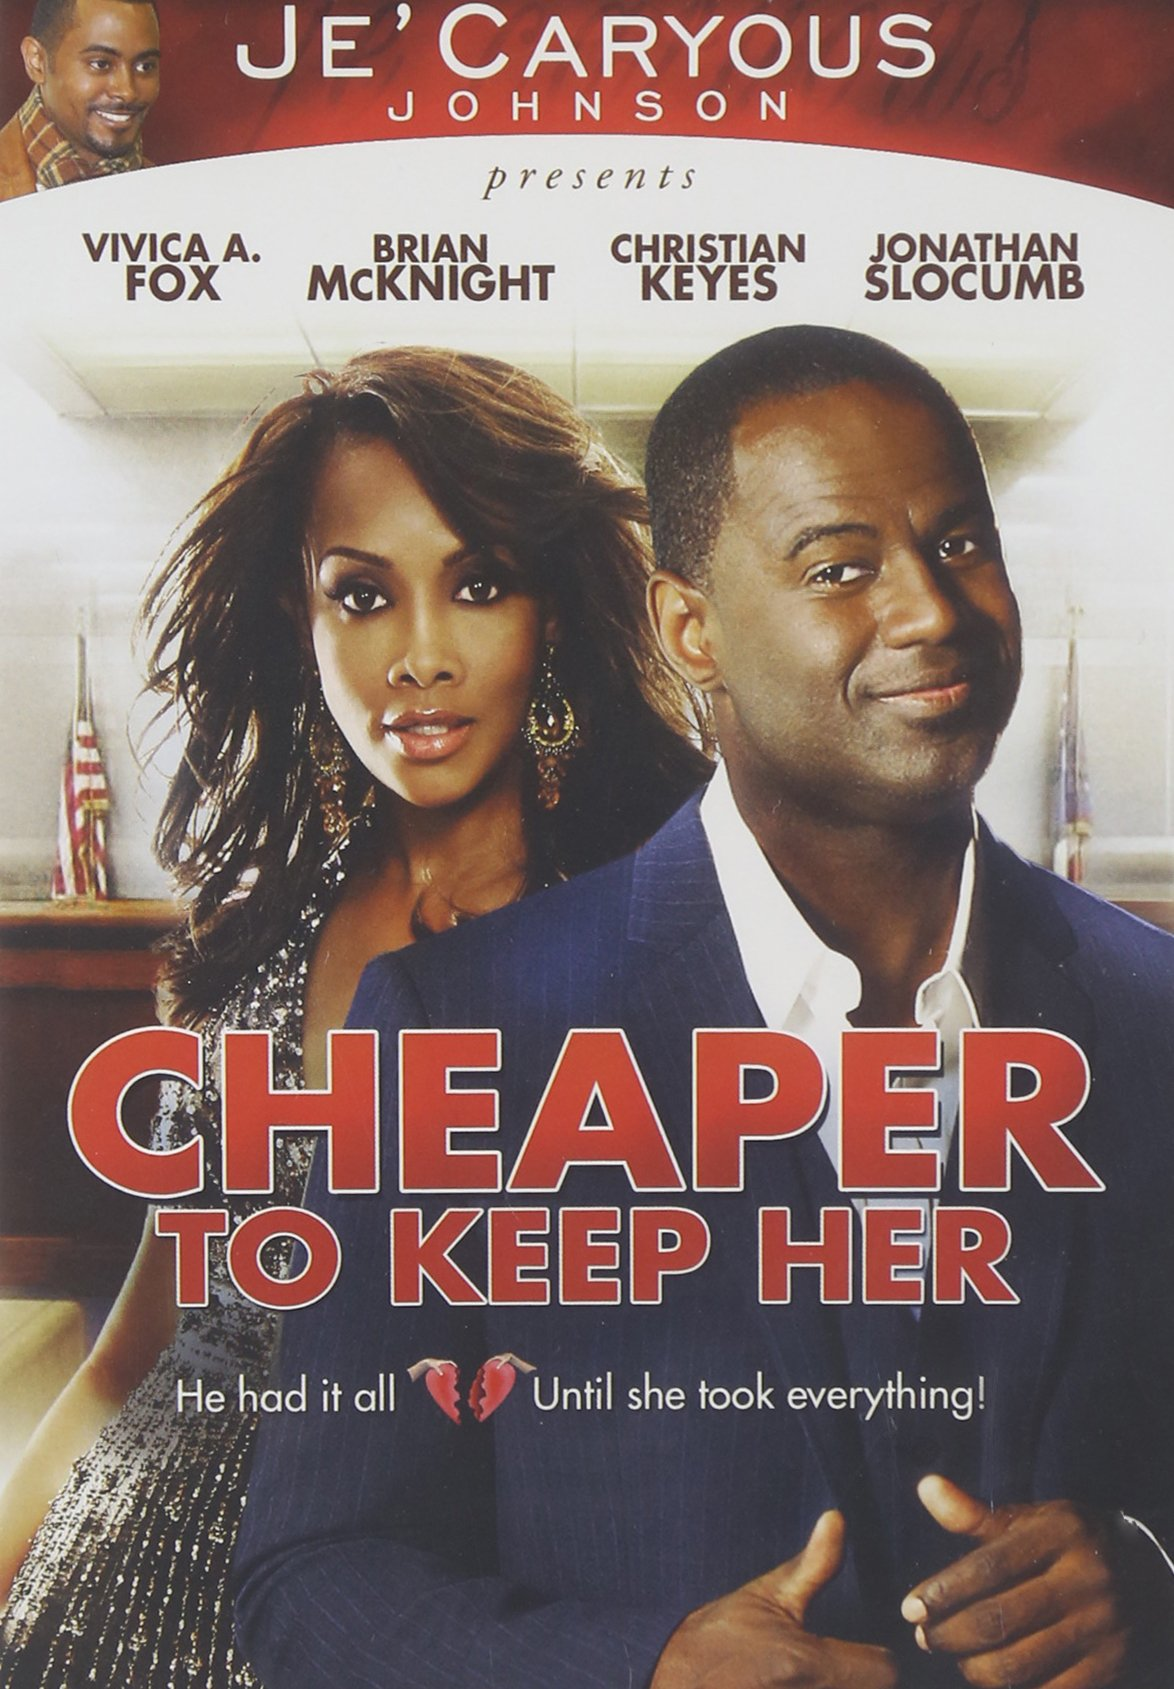 DVD : Gary Johnson - Cheaper To Keep Her (Widescreen, Dolby, Subtitled)